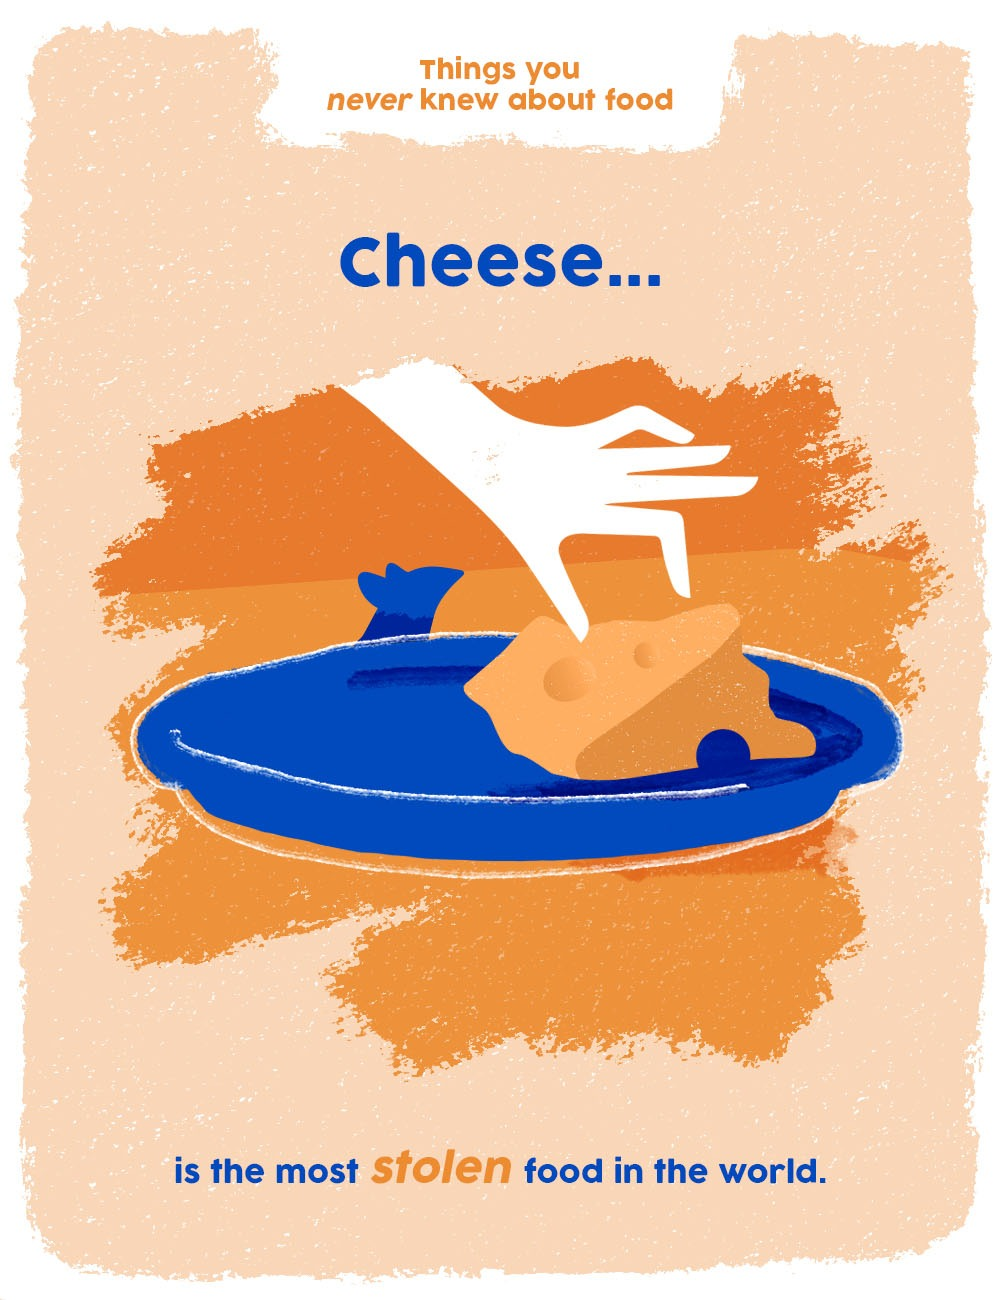 things you never knew about food graphics - cheese facts